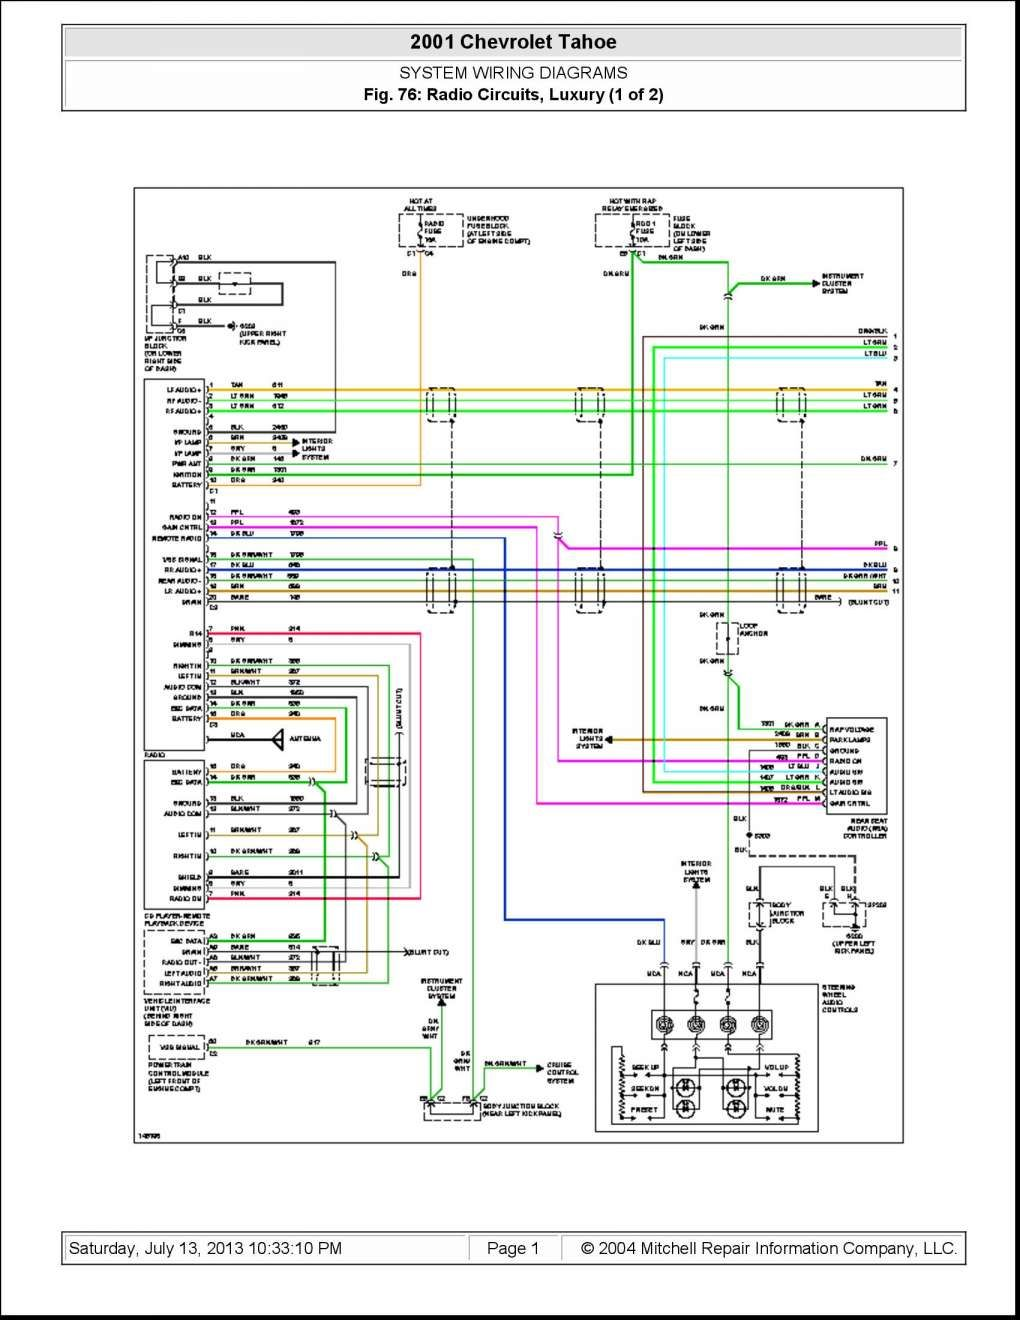 2007 chevy silverado hitch wiring diagram 2007 tahoe wiring diagram wiring diagrams site  2007 tahoe wiring diagram wiring